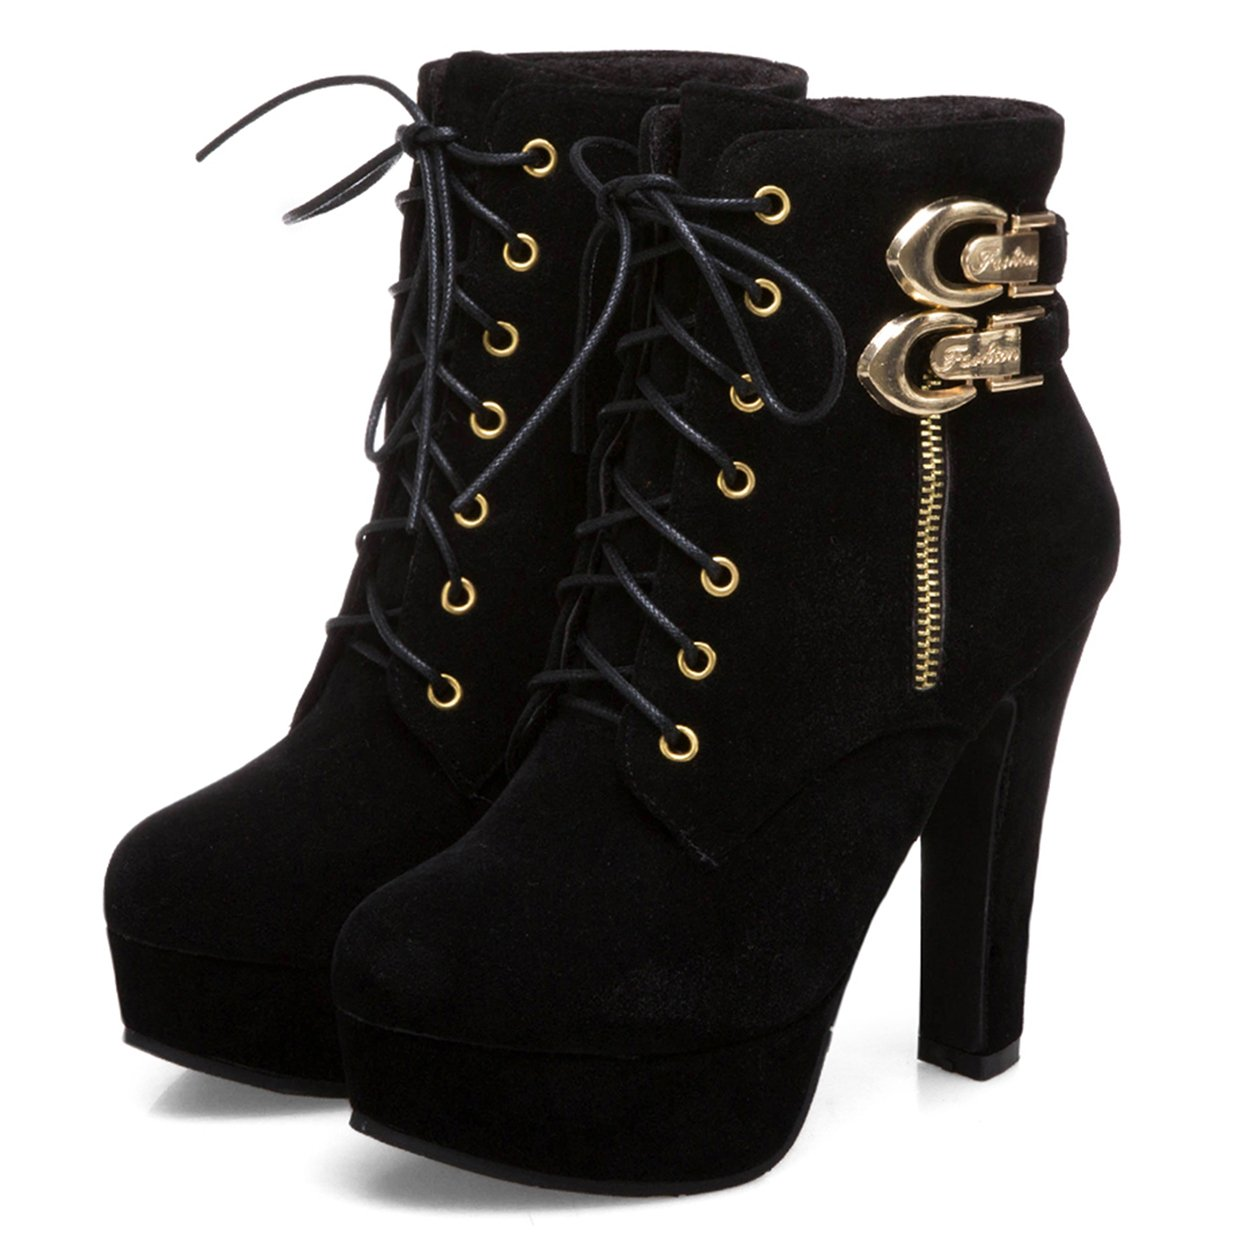 c996fc8be0fe5 Susanny Womens Sexy Martin Boots Platform Chunky High Heels Ankle Booties  Lace Up Zipper Autumn Winter Shoes